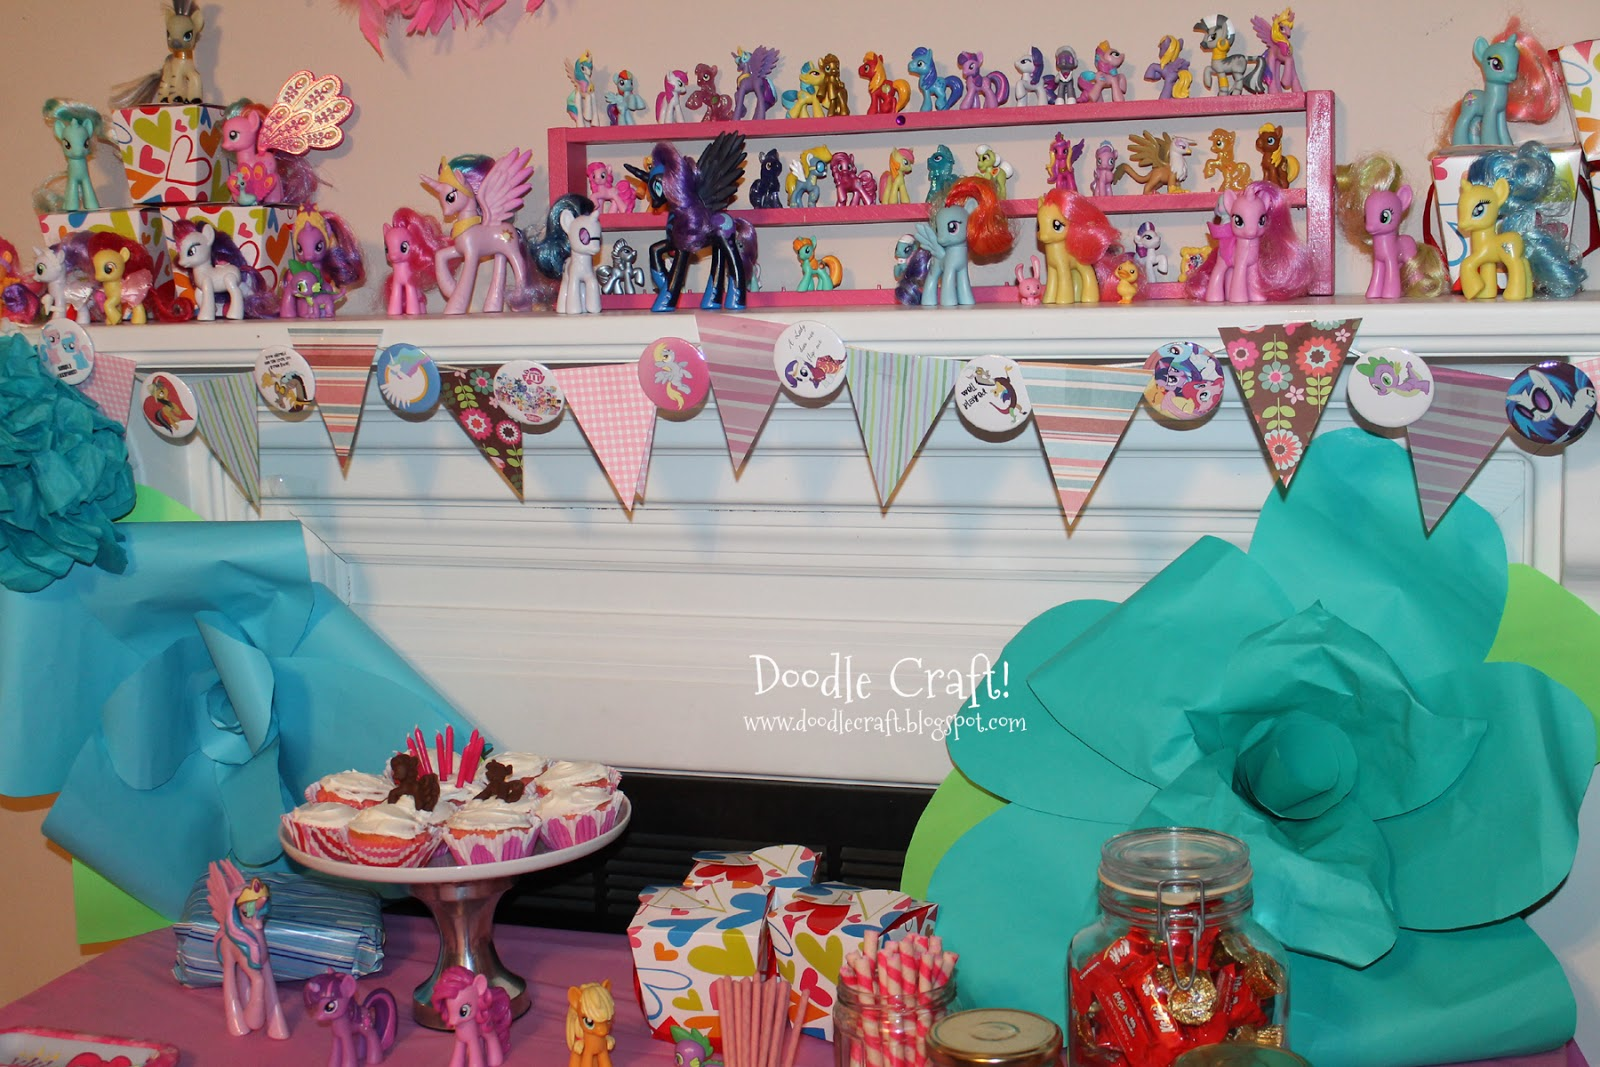 Doodlecraft my little pony budget party and chocolates for Crafts for birthday parties